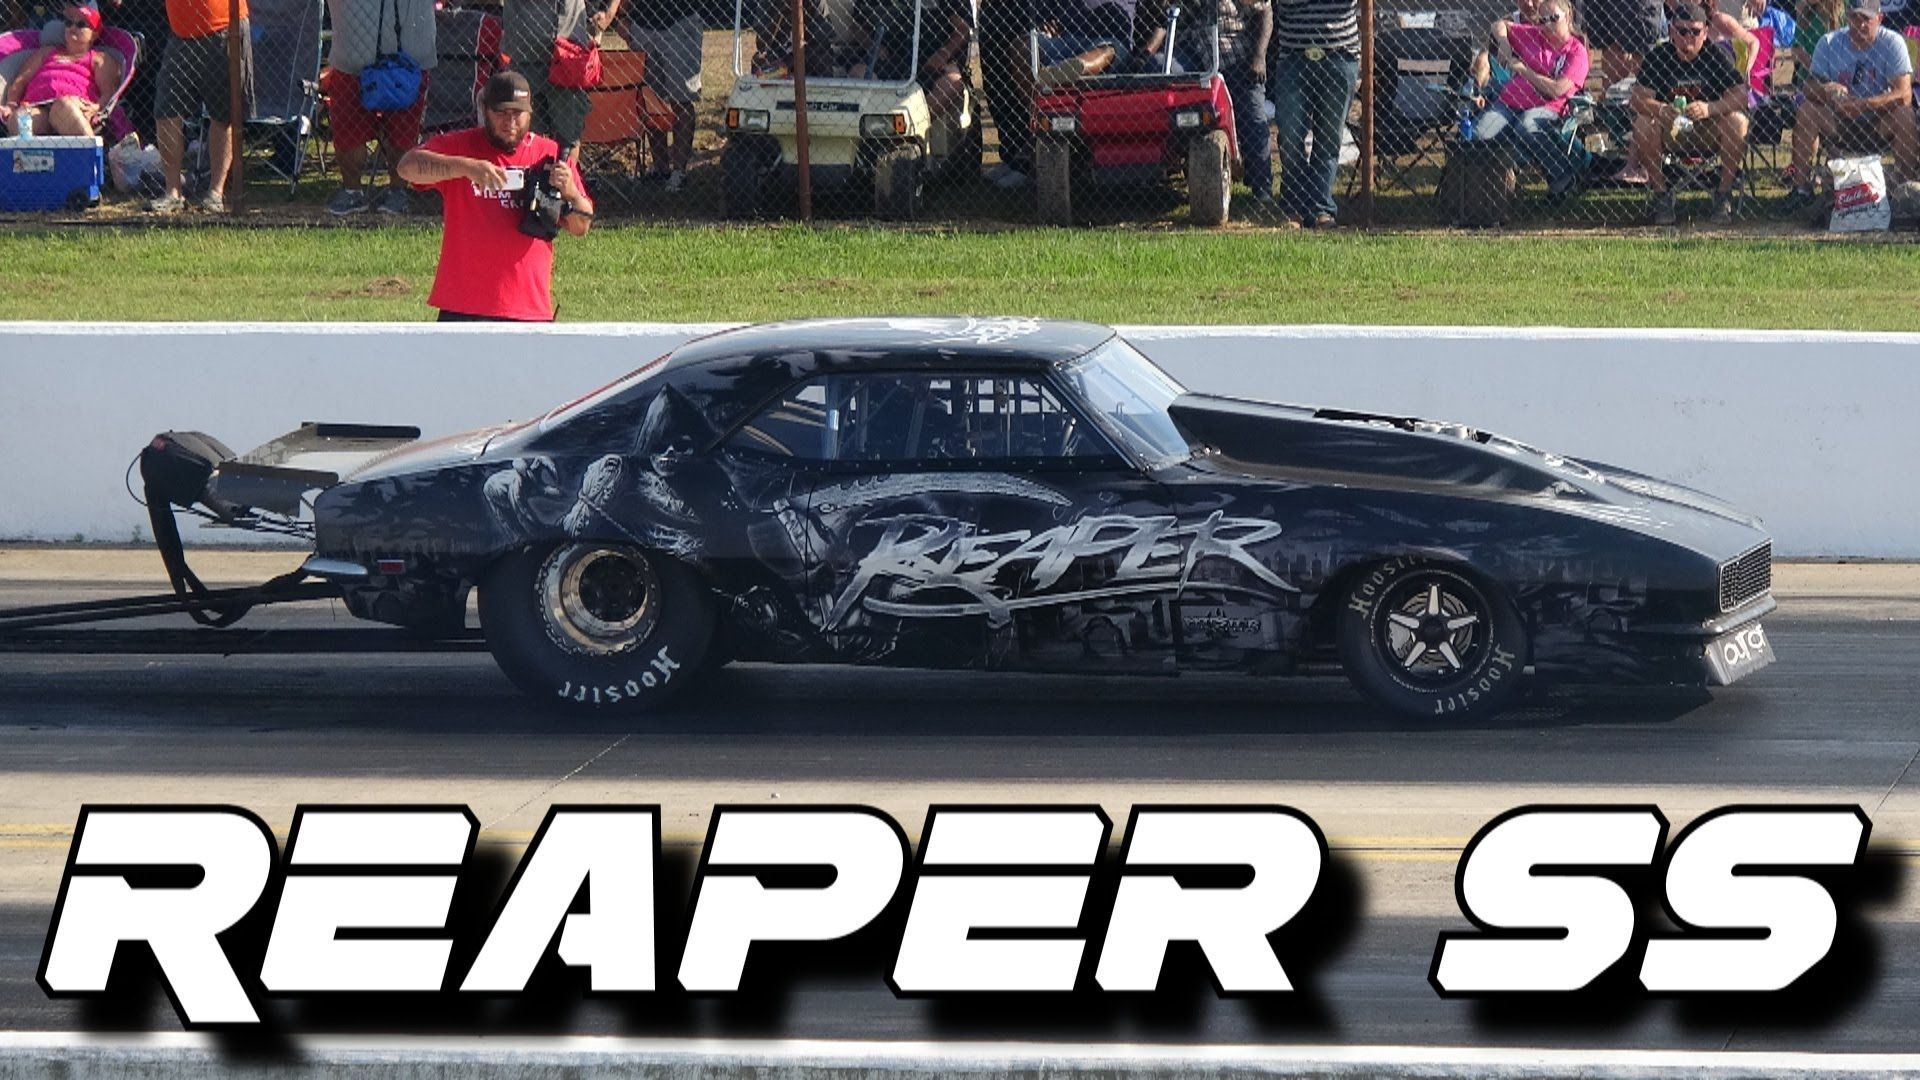 Reaper SS from Street Outlaws. | Street Outlaws Videos | Pinterest ...